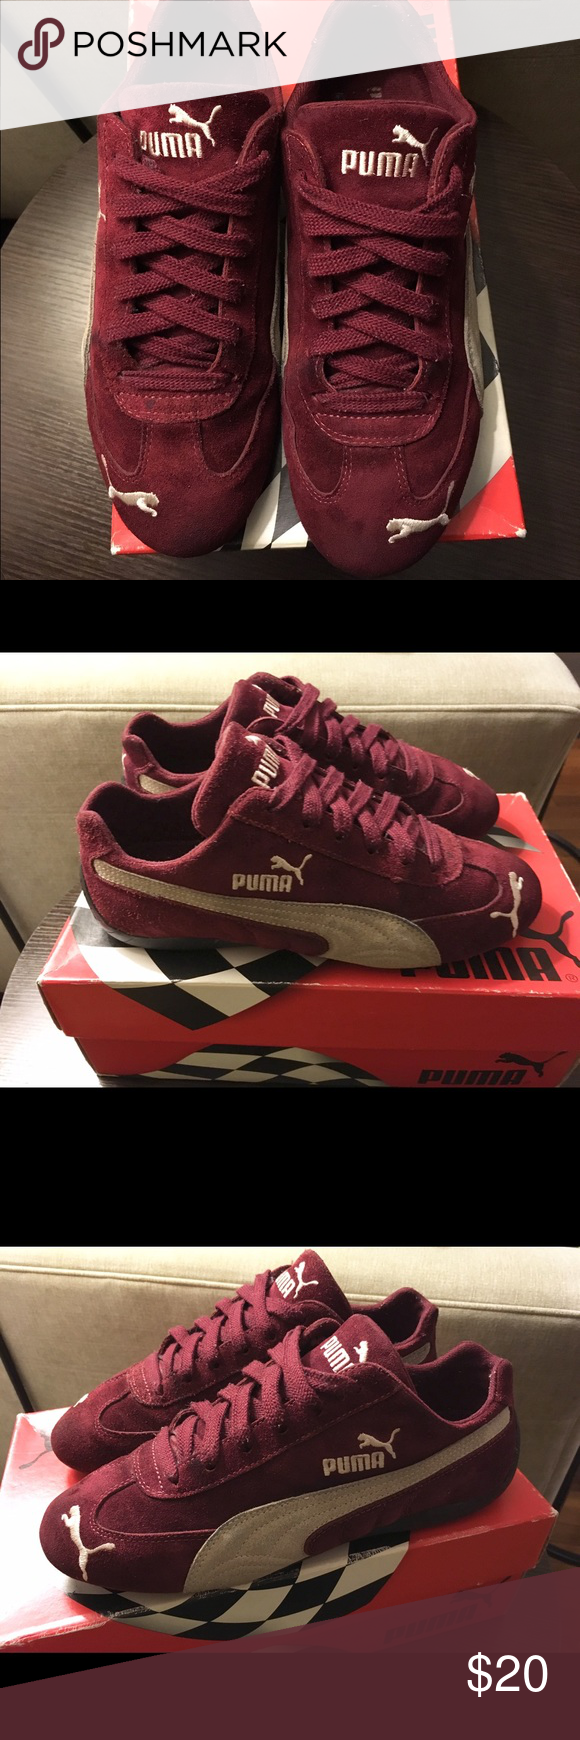 rencontrer 4d158 5900f PUMA Speed Cat PUMA Speed Cat in burgundy, color of the ...